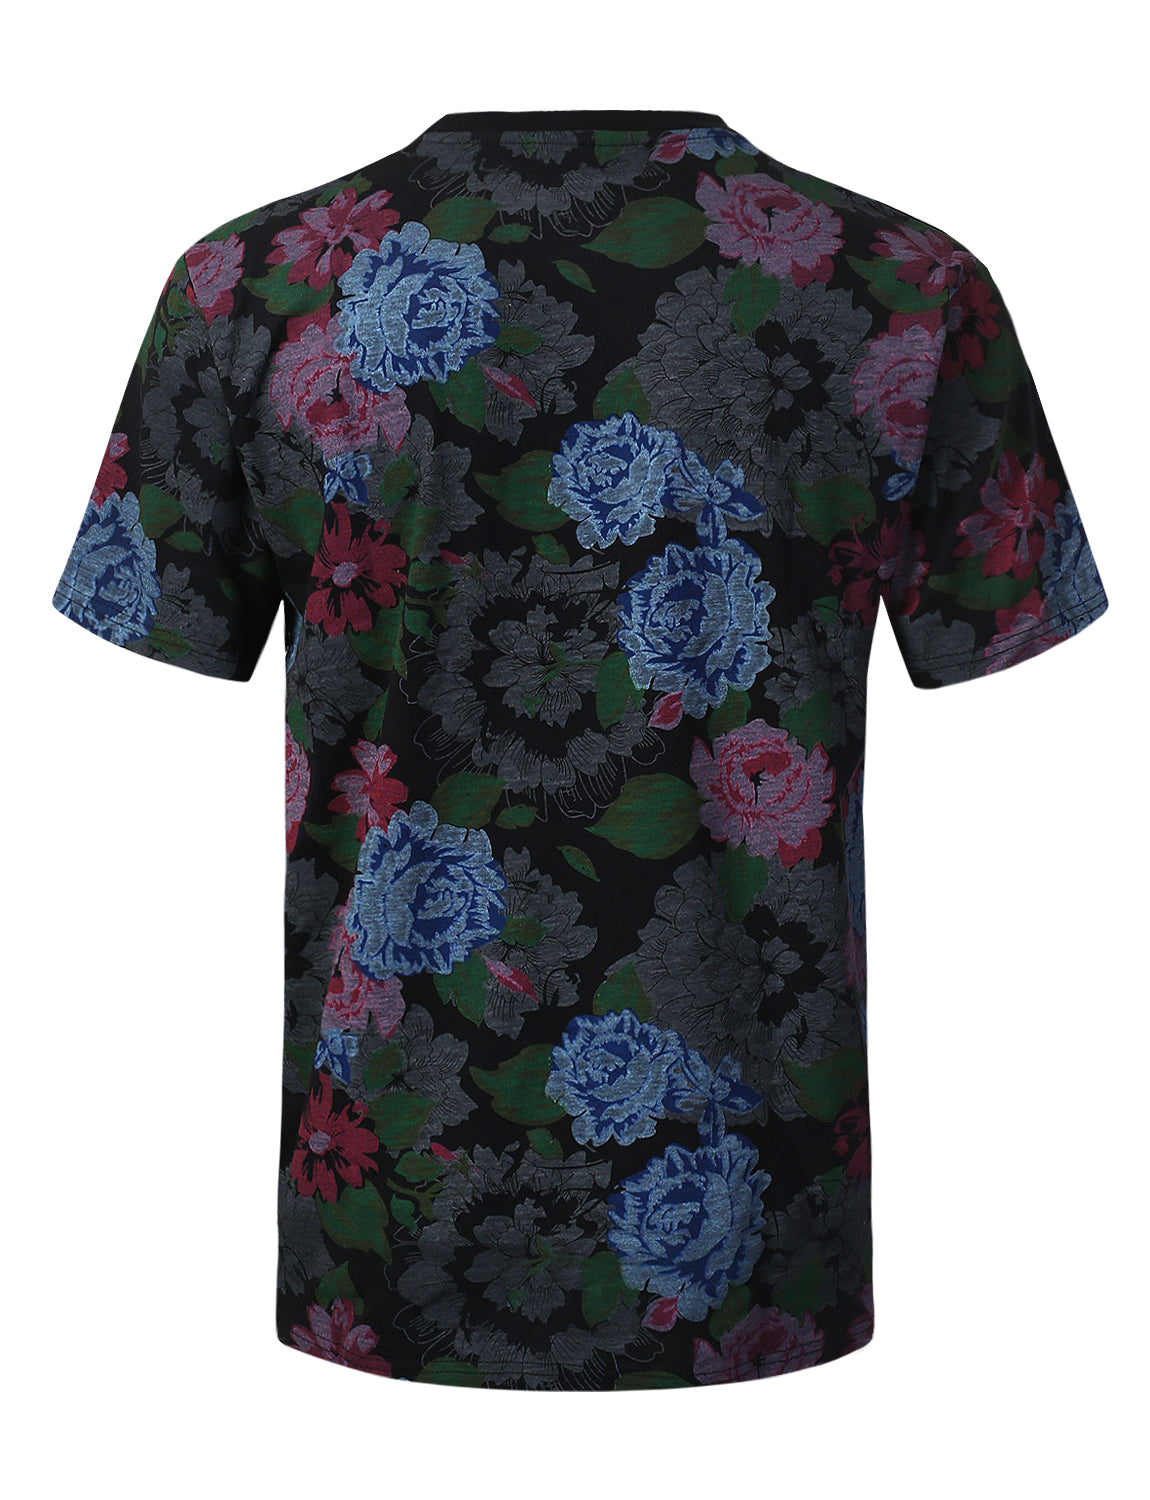 BLACK Hope Flower Graphic Print T-shirt - URBANCREWS